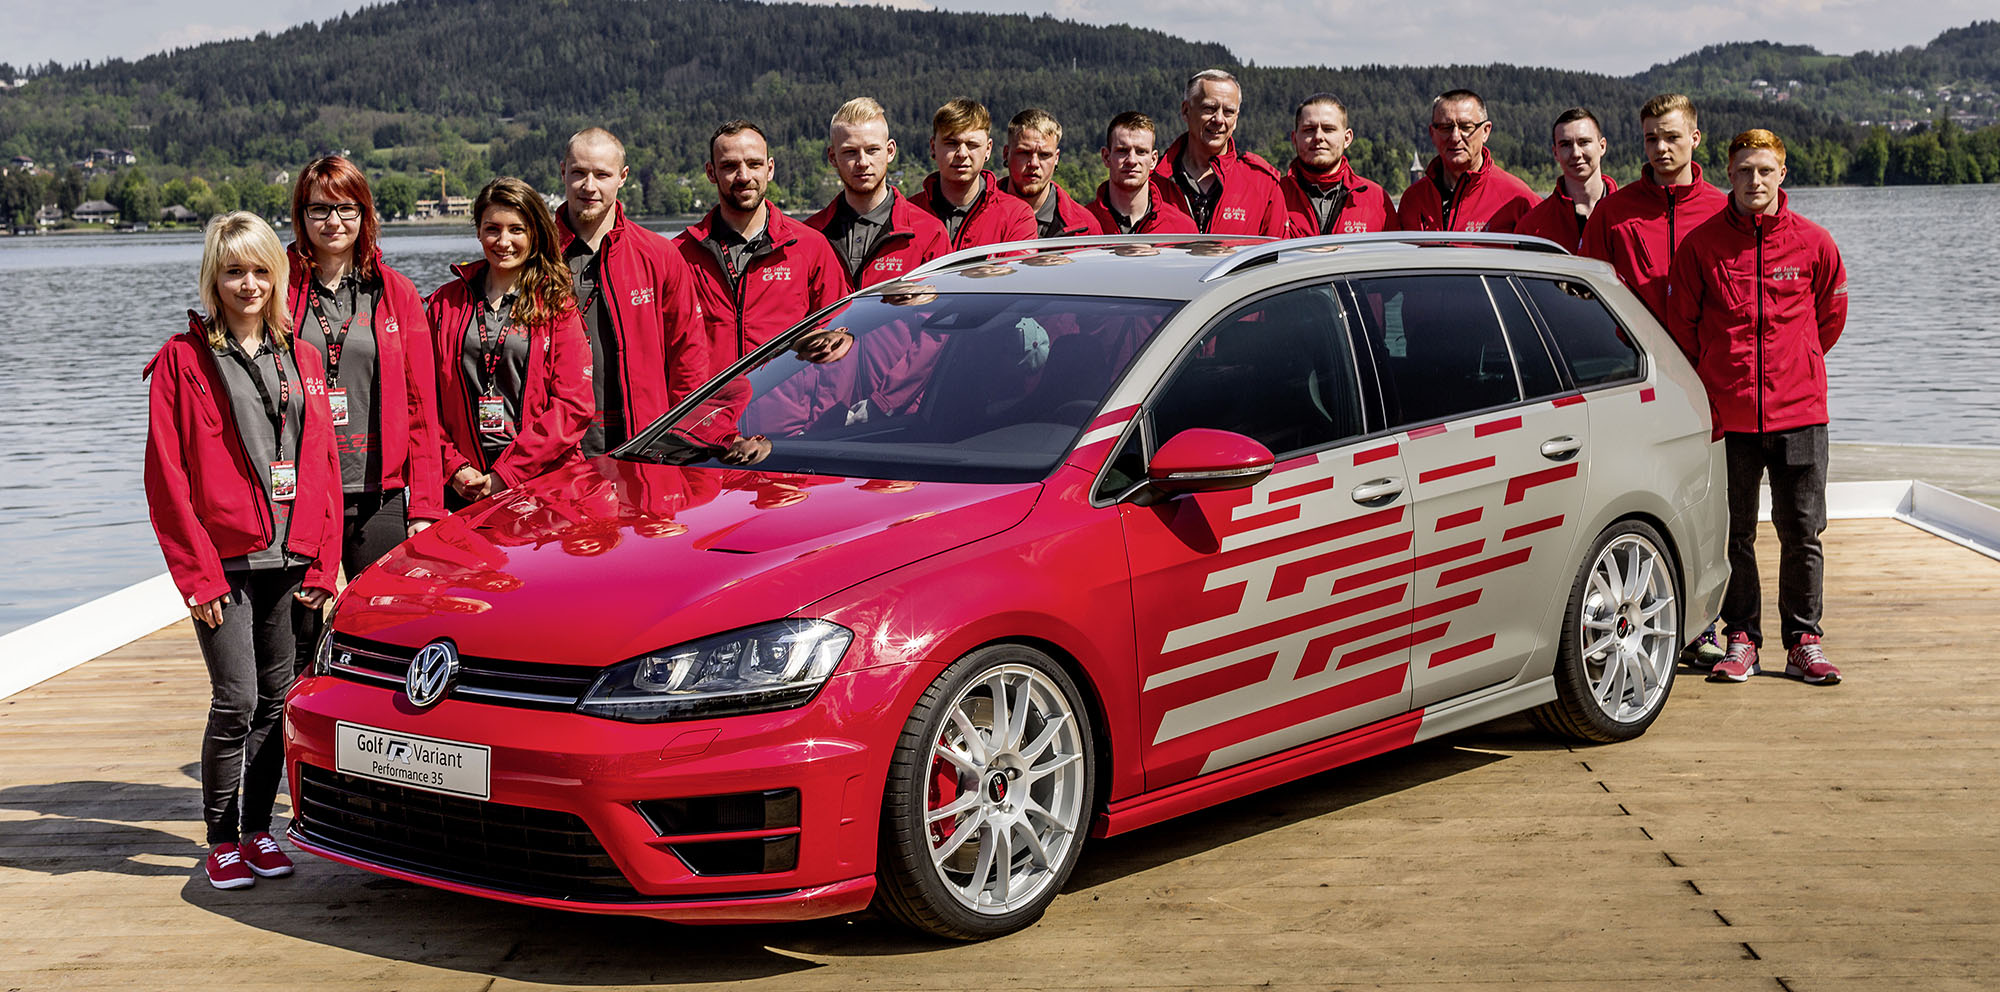 volkswagen golf gti heartbeat and golf r variant performance 35 concepts unveiled